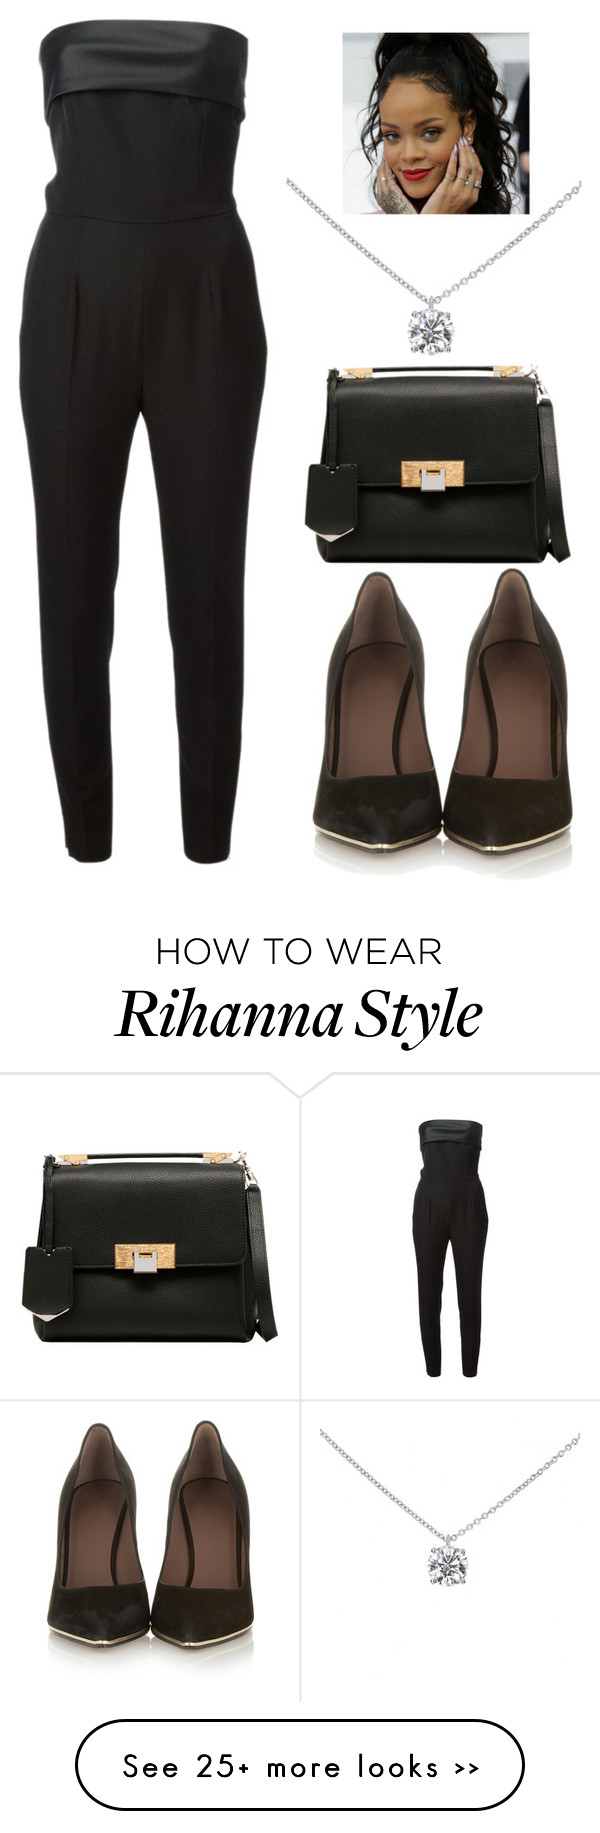 """""""RED CARPET STYLE"""" by briantaec on Polyvore"""